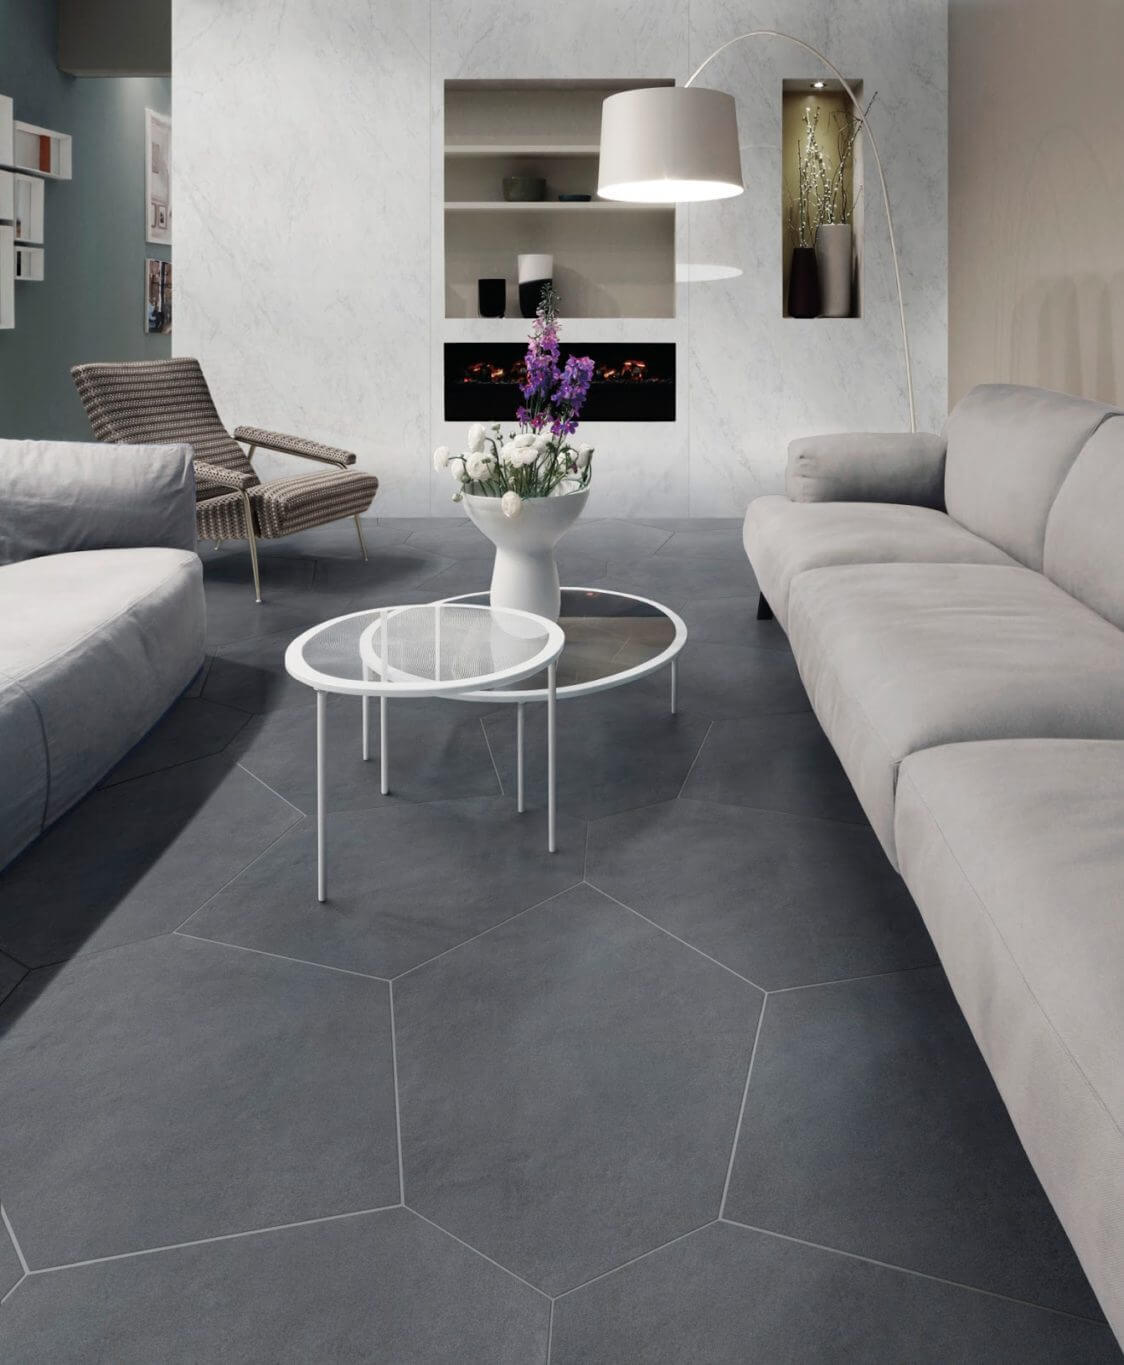 Living Room With Tile Flooring